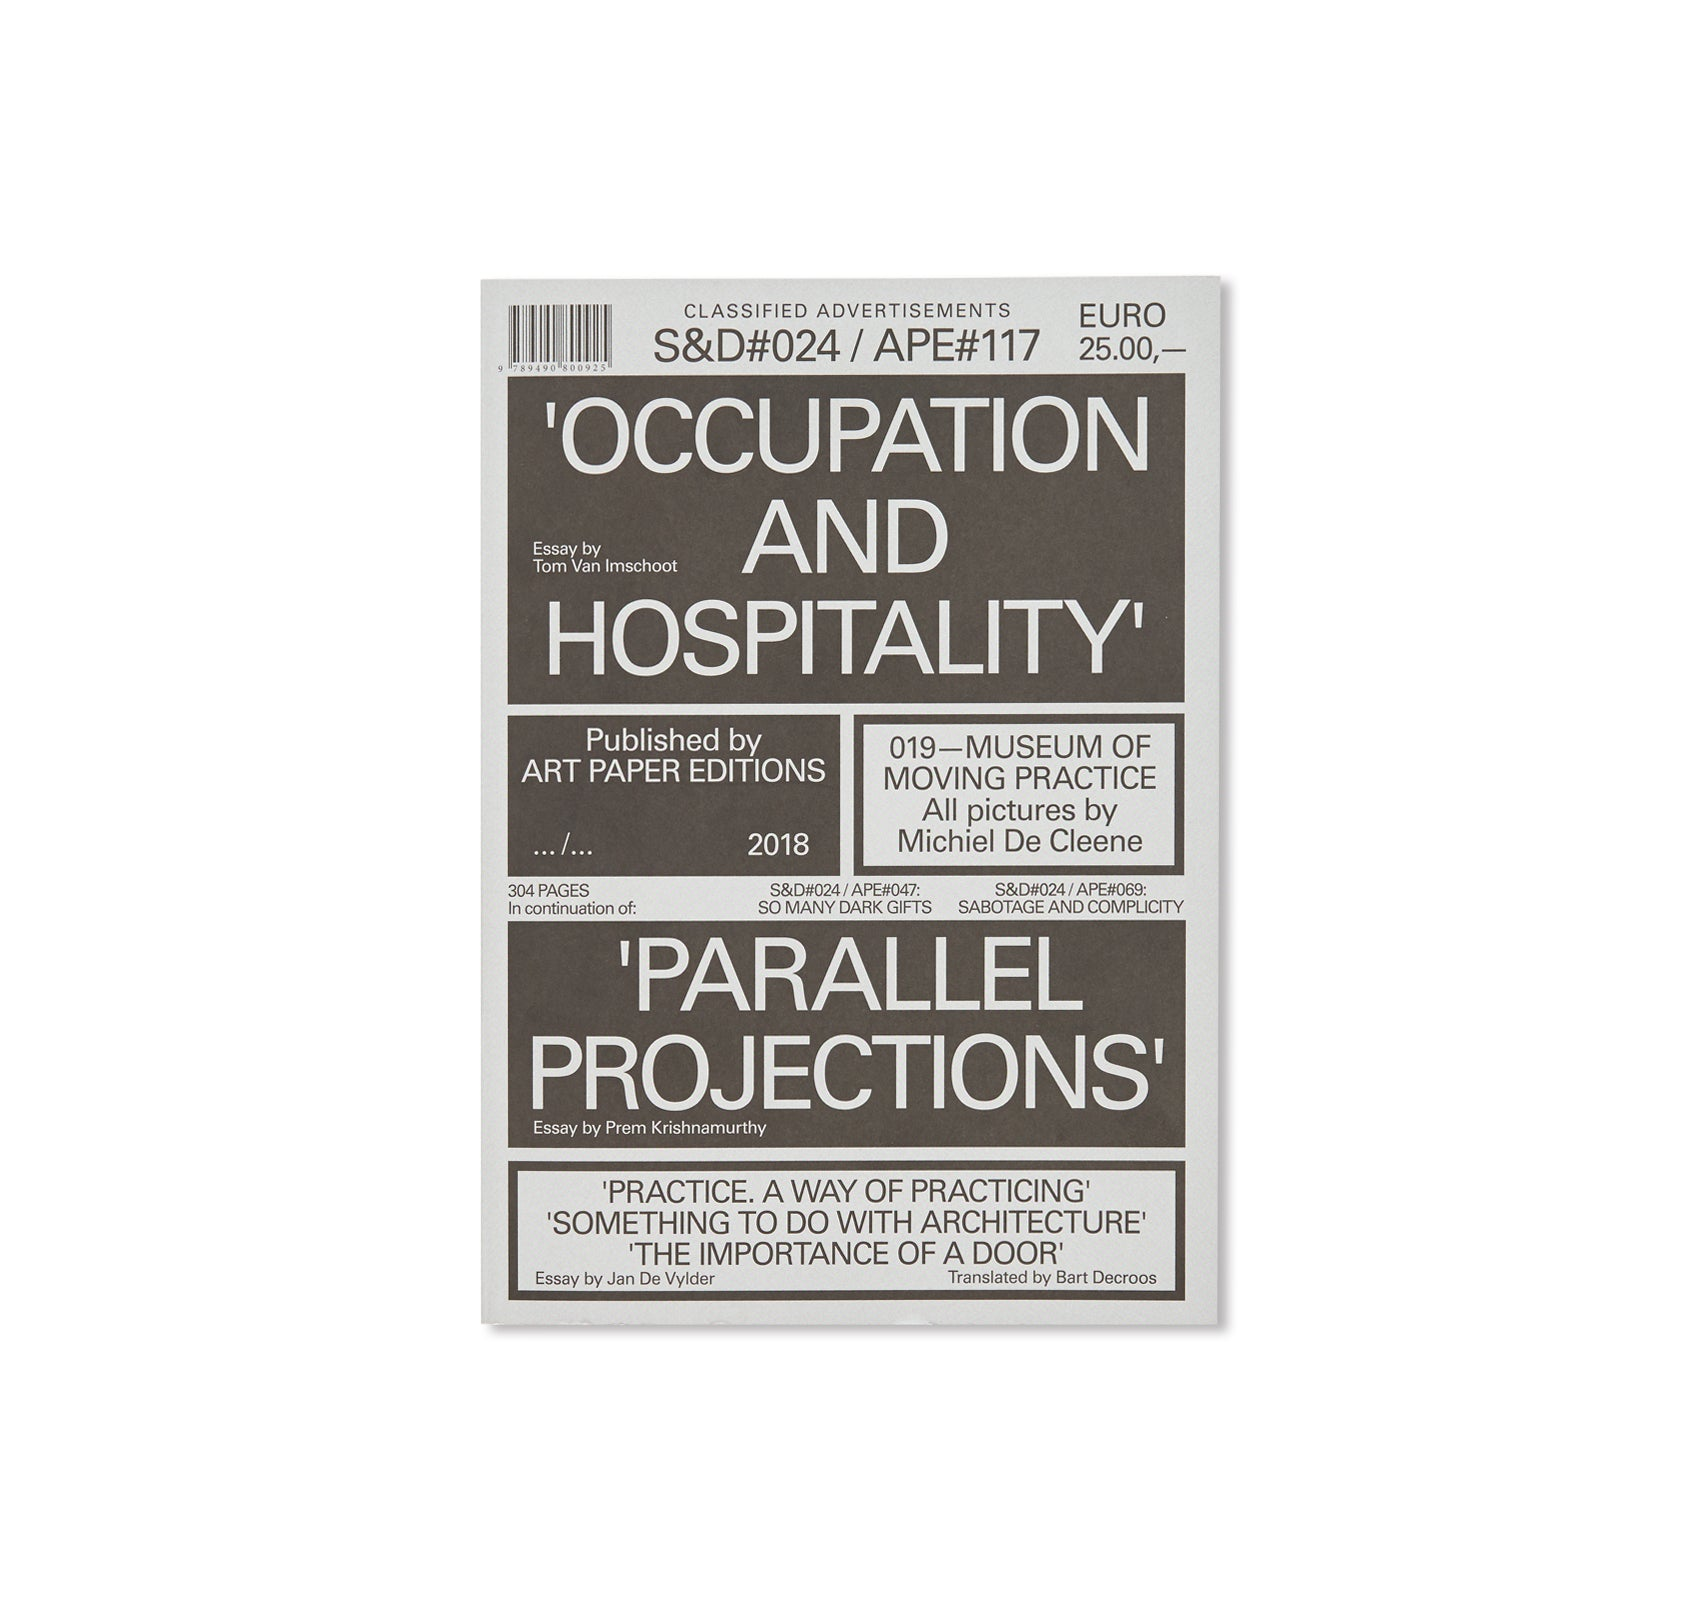 S&D#024 / APE#017: OCCUPATION AND HOSPITALITY by 019